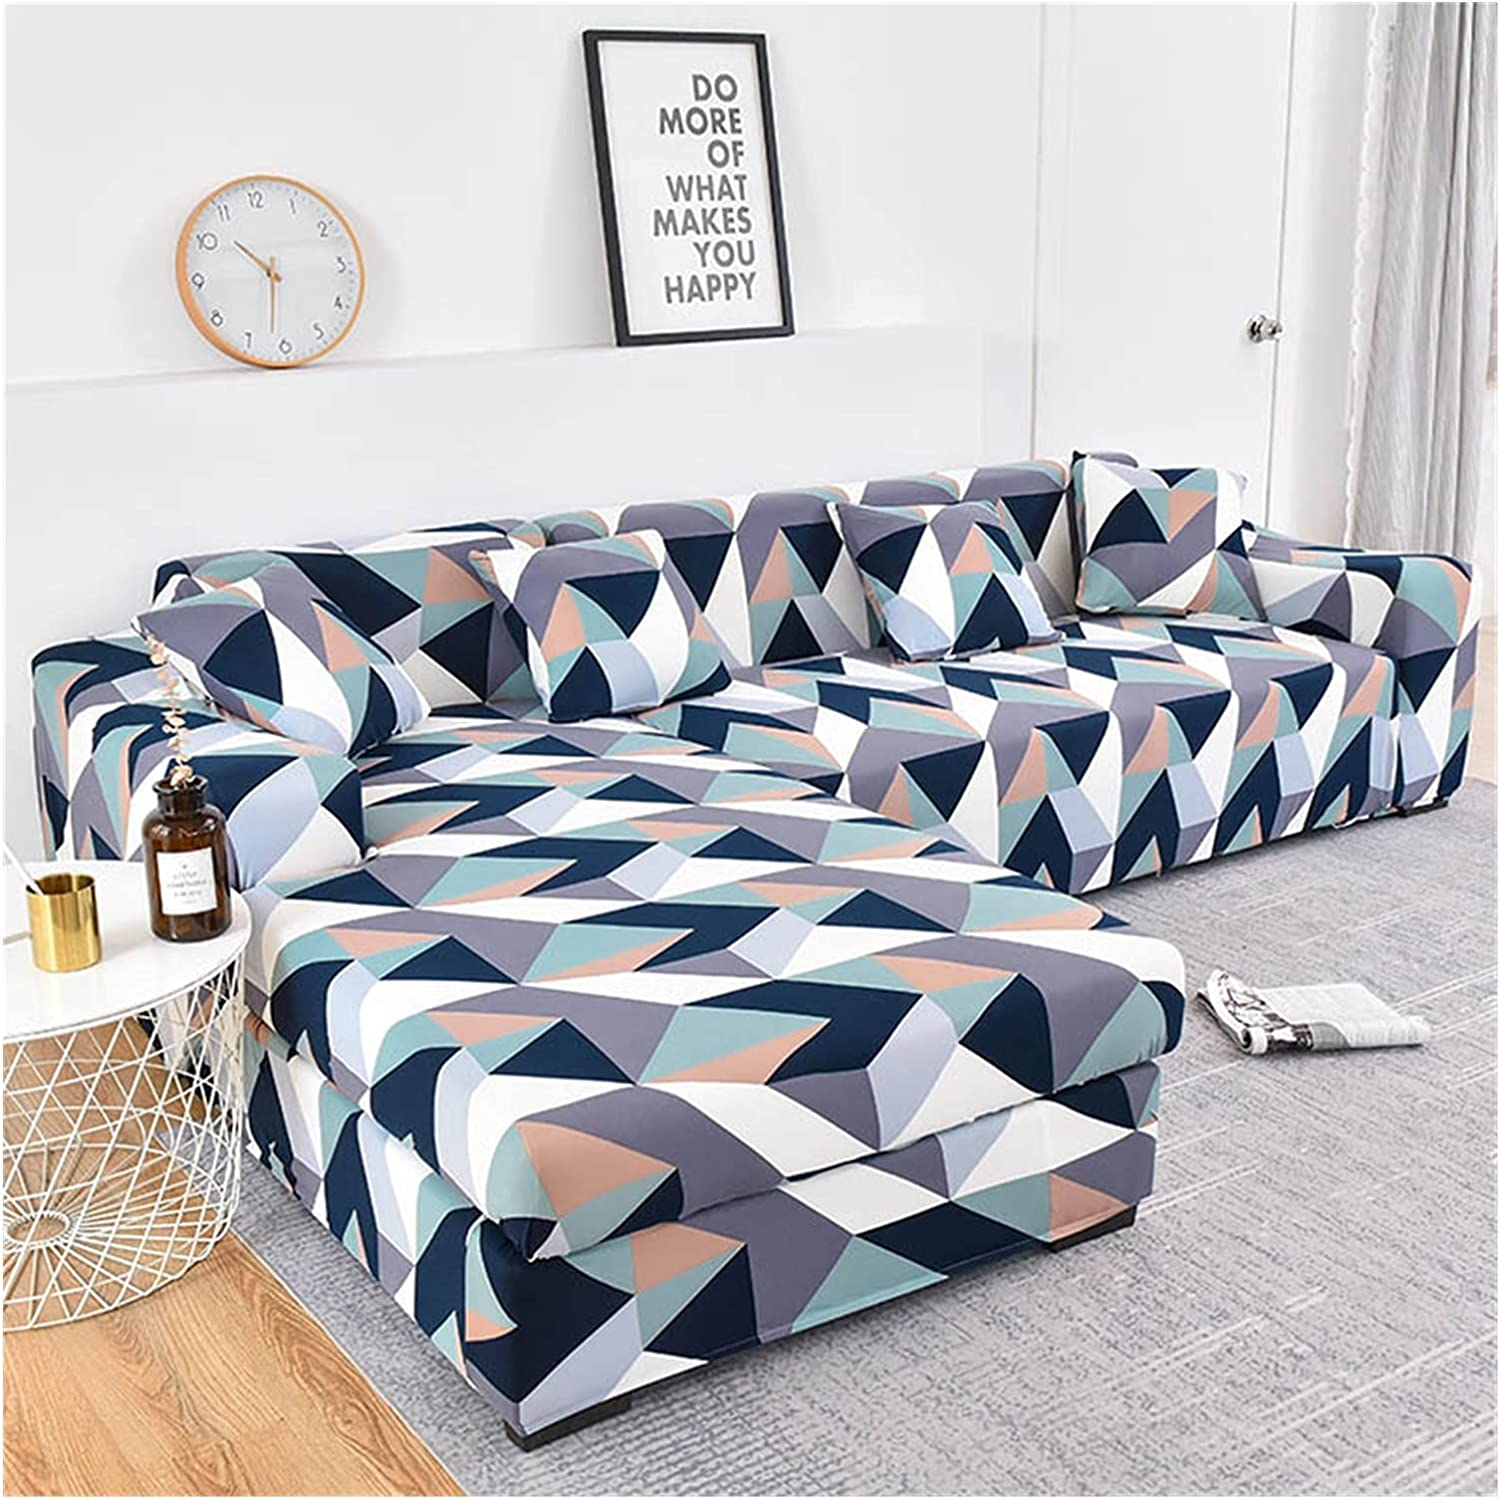 Sofa latest Cover Geometric Couch Max 70% OFF Elastic for R Living